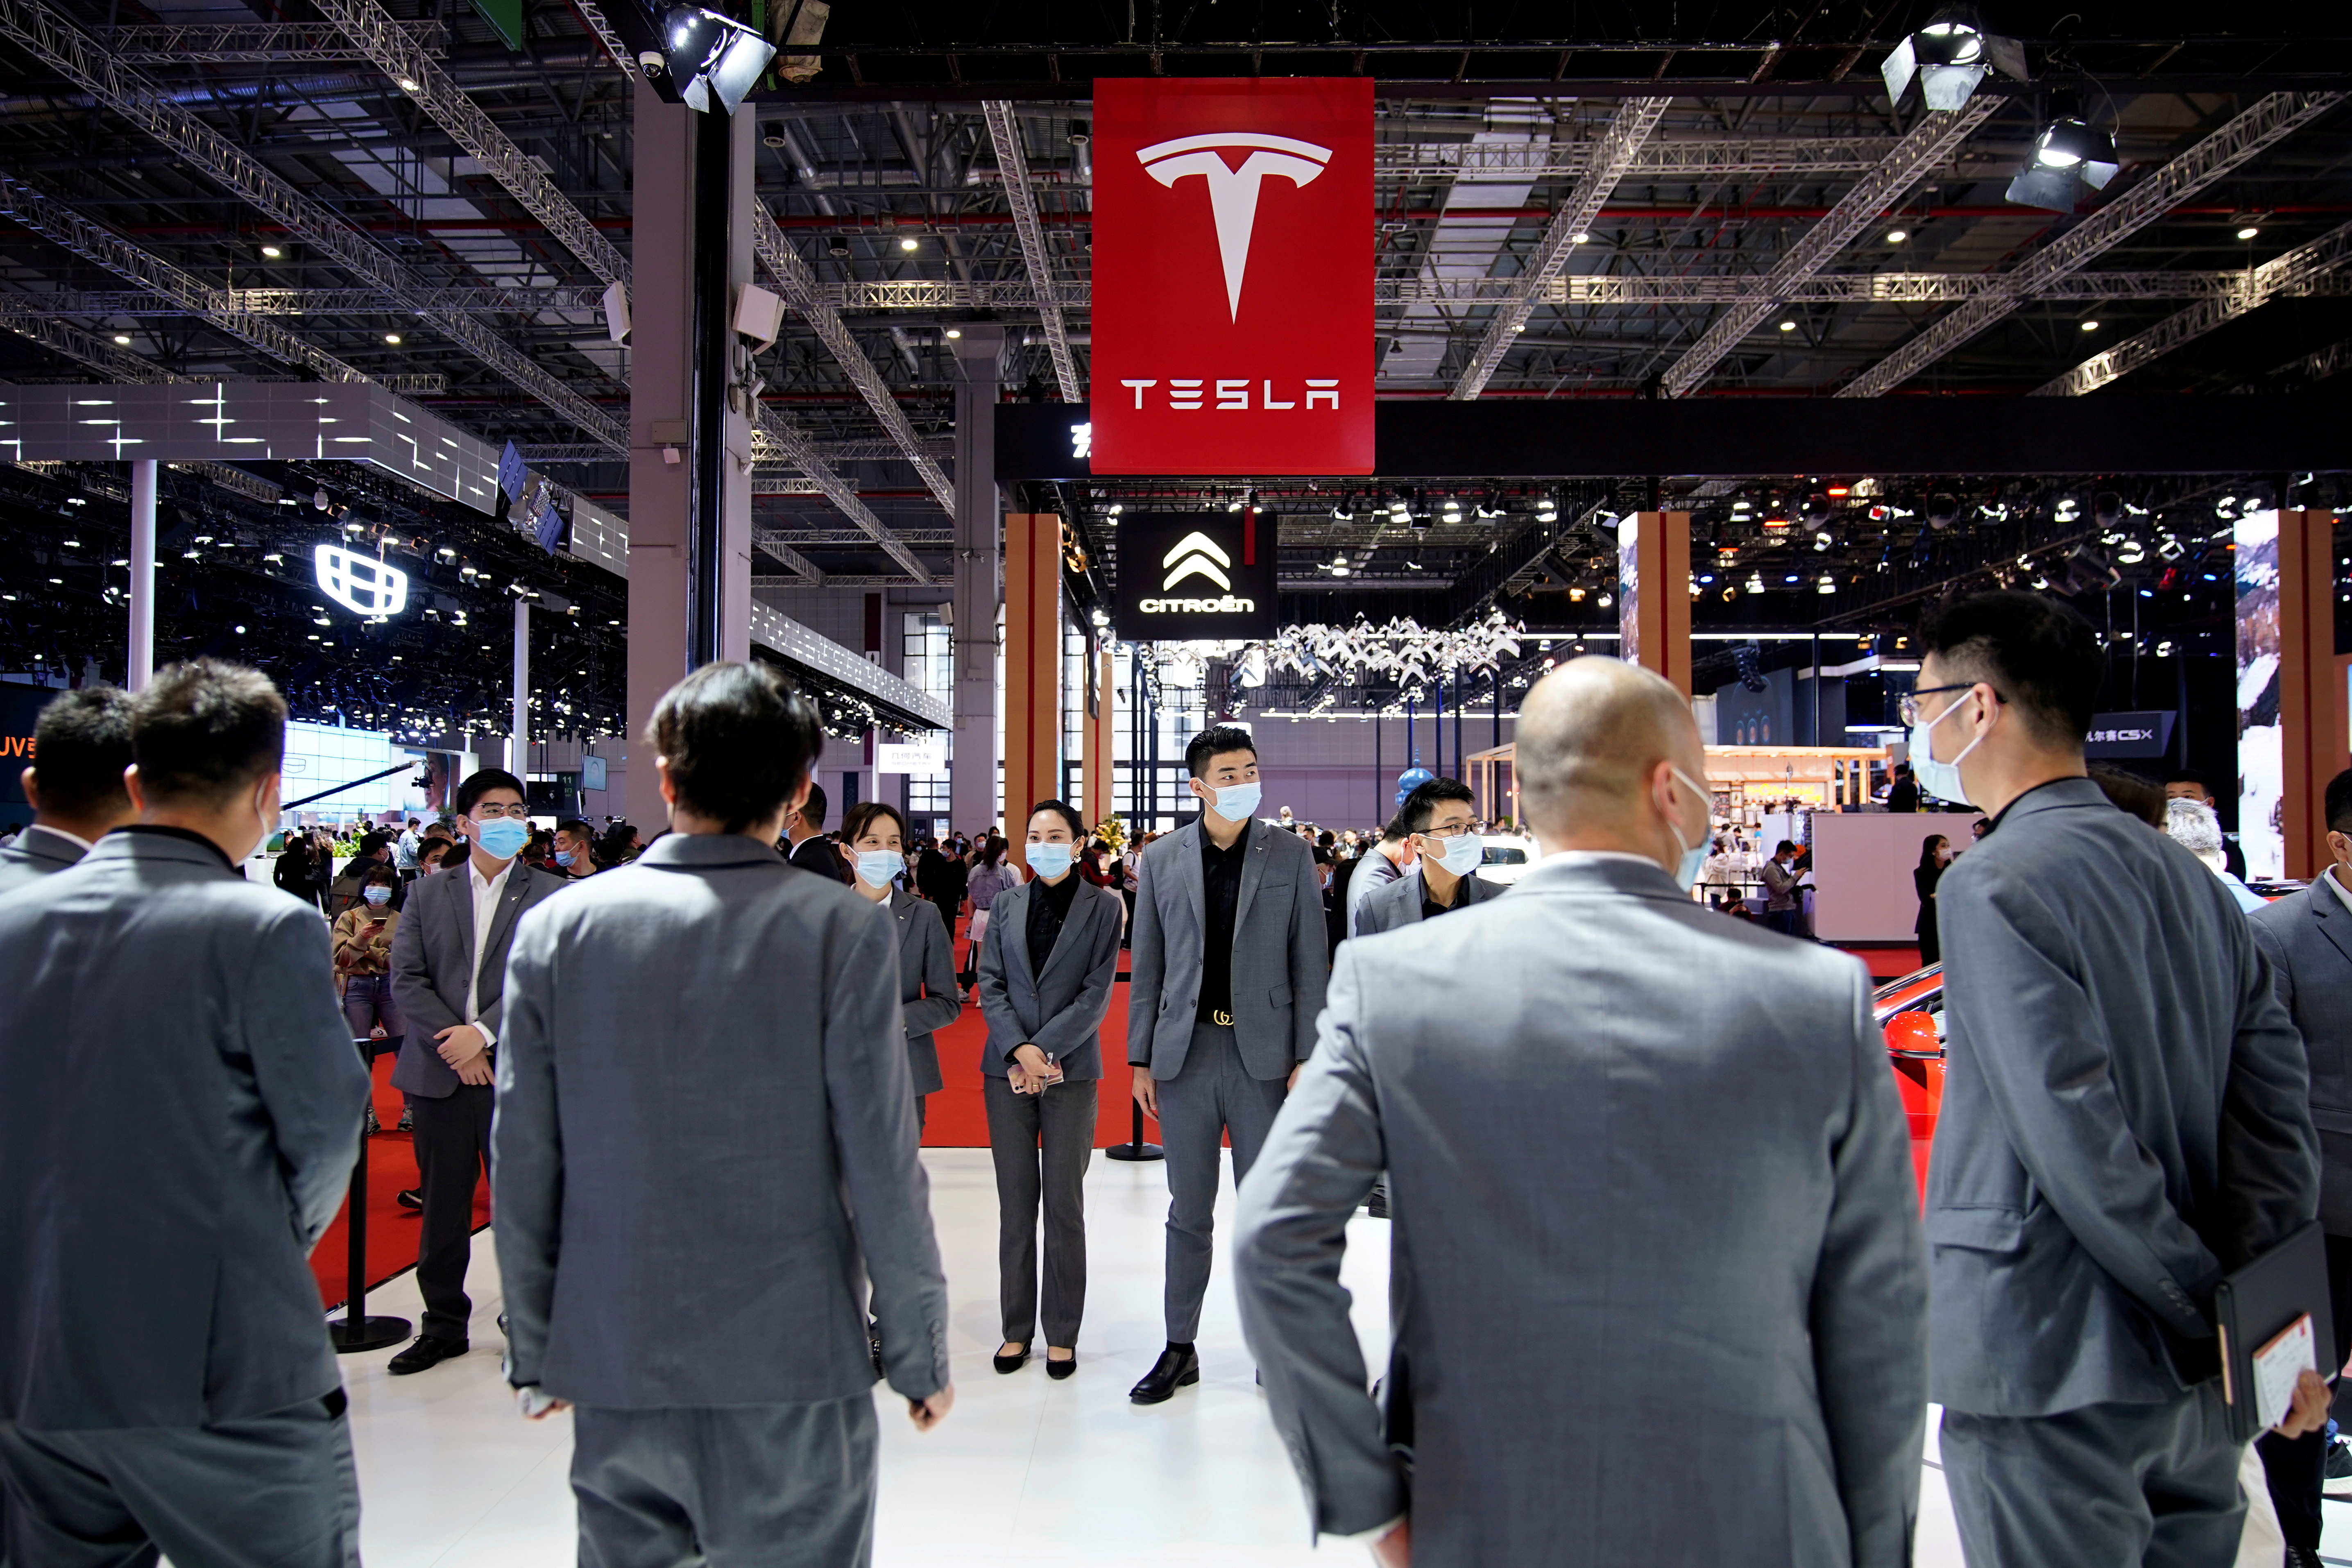 Staff members stand at the Tesla booth during a media day for the Auto Shanghai show in Shanghai, China April 19, 2021. REUTERS/Aly Song